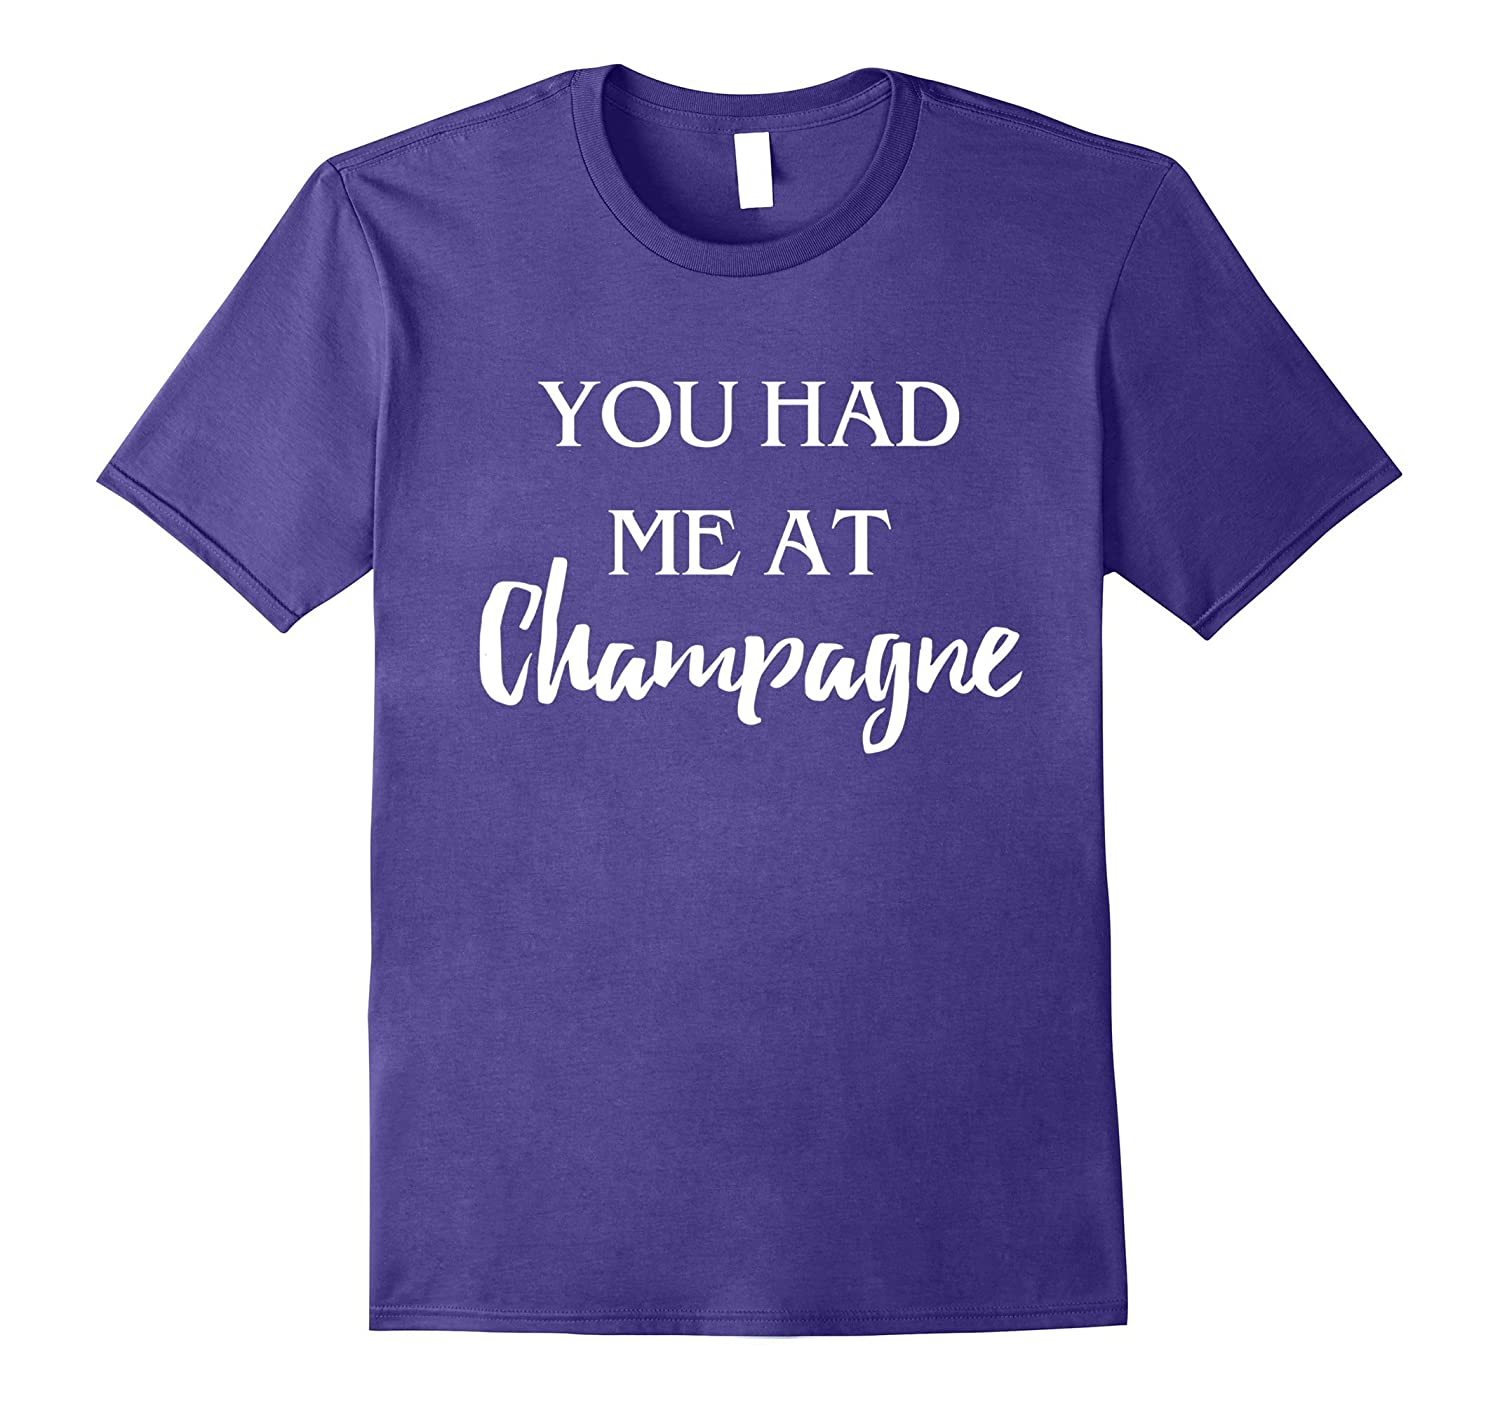 You Had Me At Champagne Drinking Fun T-Shirt for Women & Men-T-Shirt